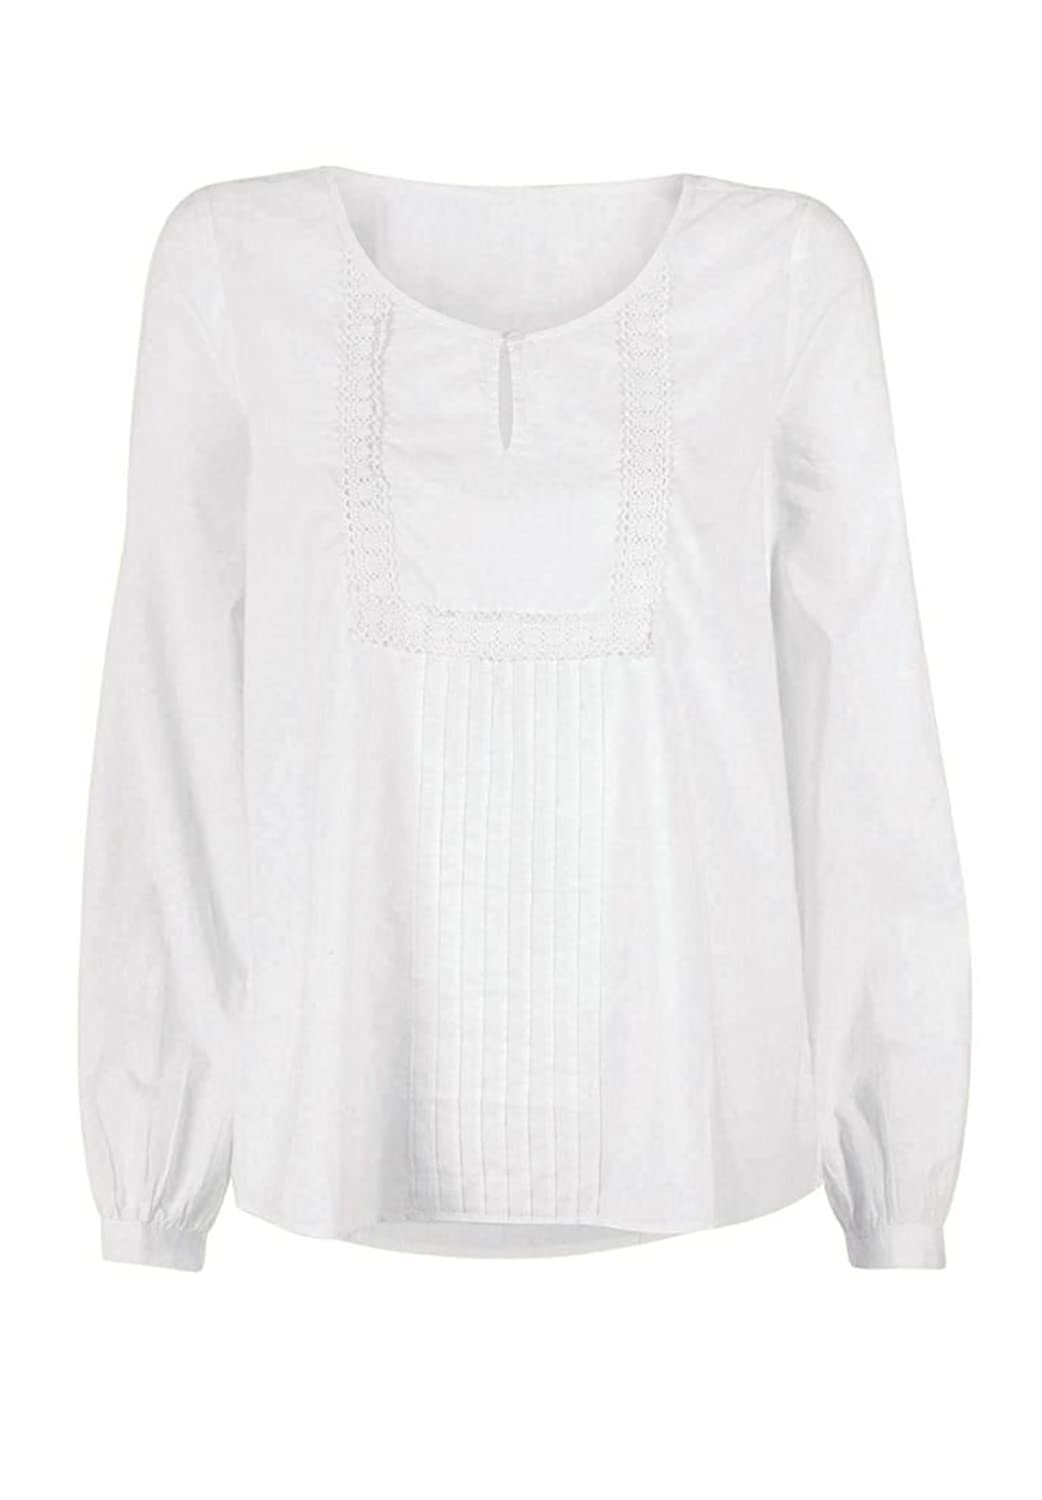 Edwardian Style Blouses Ellos Womens Plus Size Cotton Peasant Blouse $34.68 AT vintagedancer.com